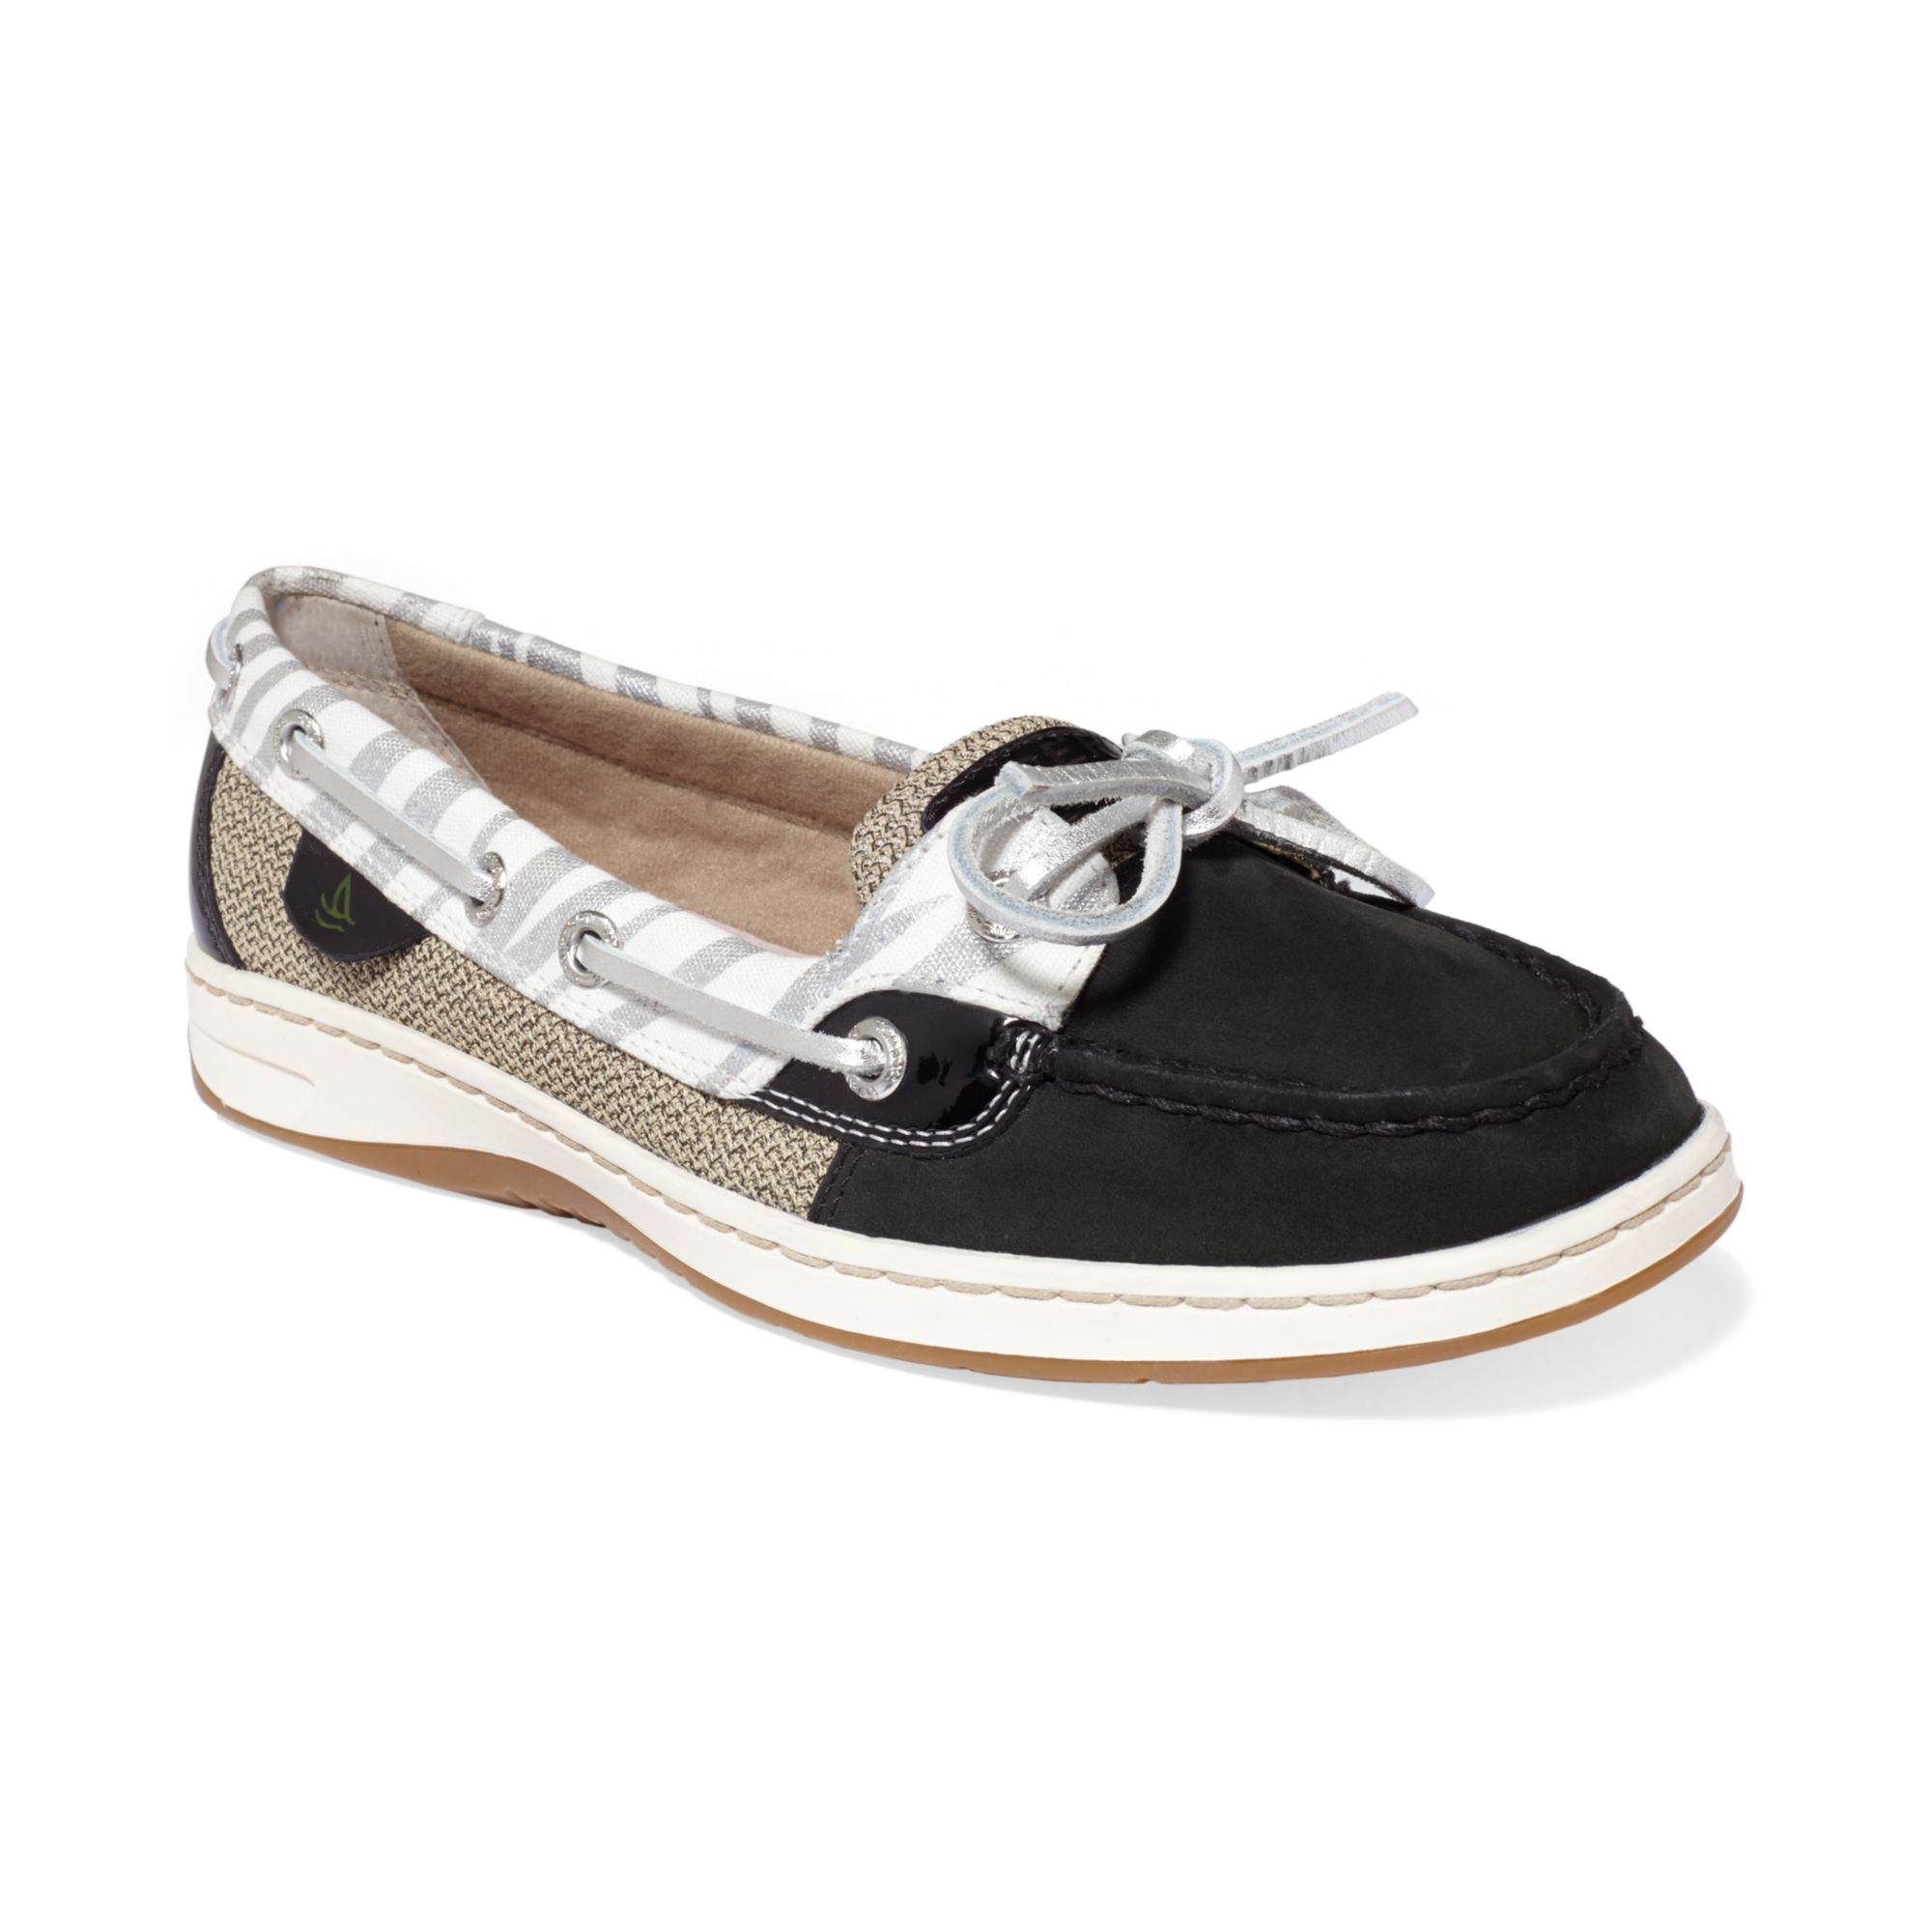 Asos Boat Shoes Womens